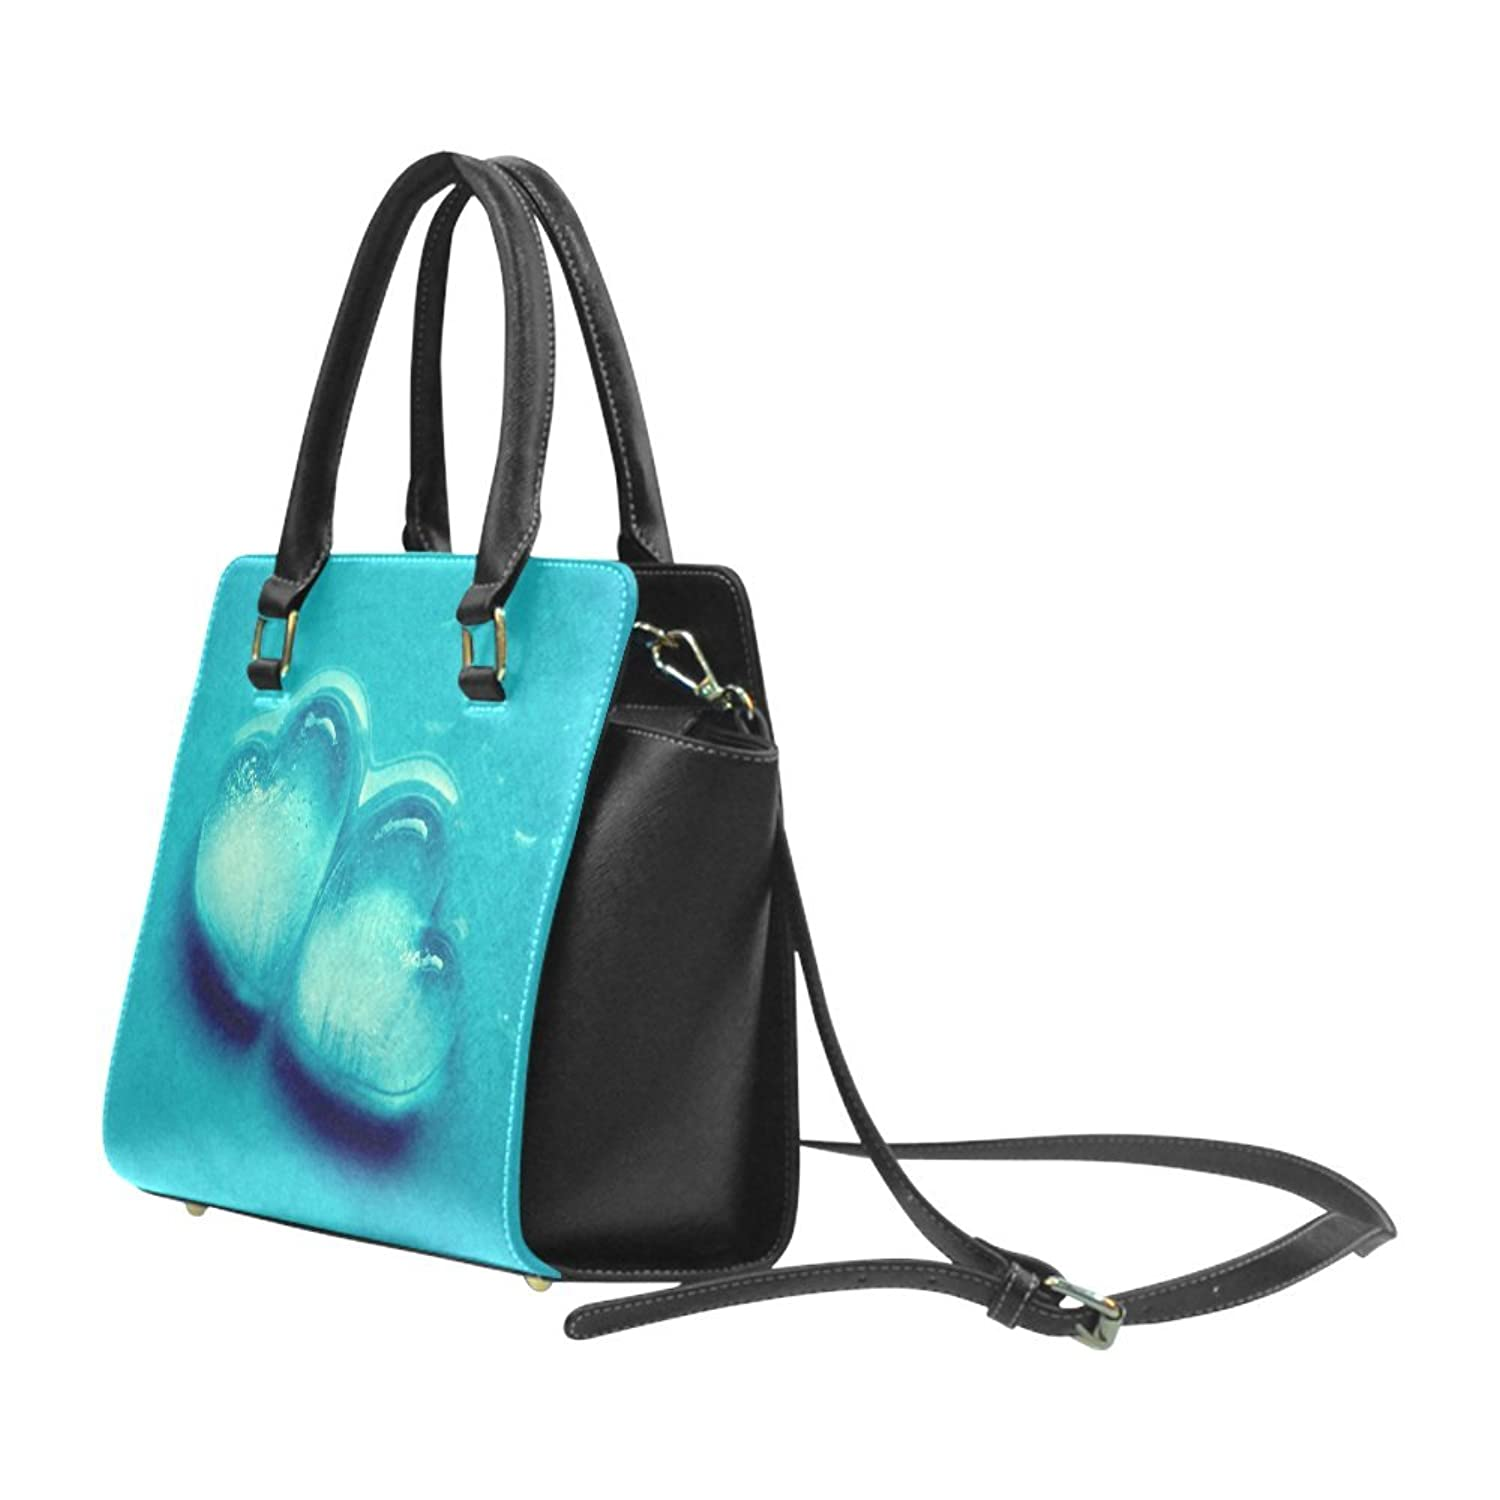 Personalized custom atlas style Rivet Shoulder Handbag.